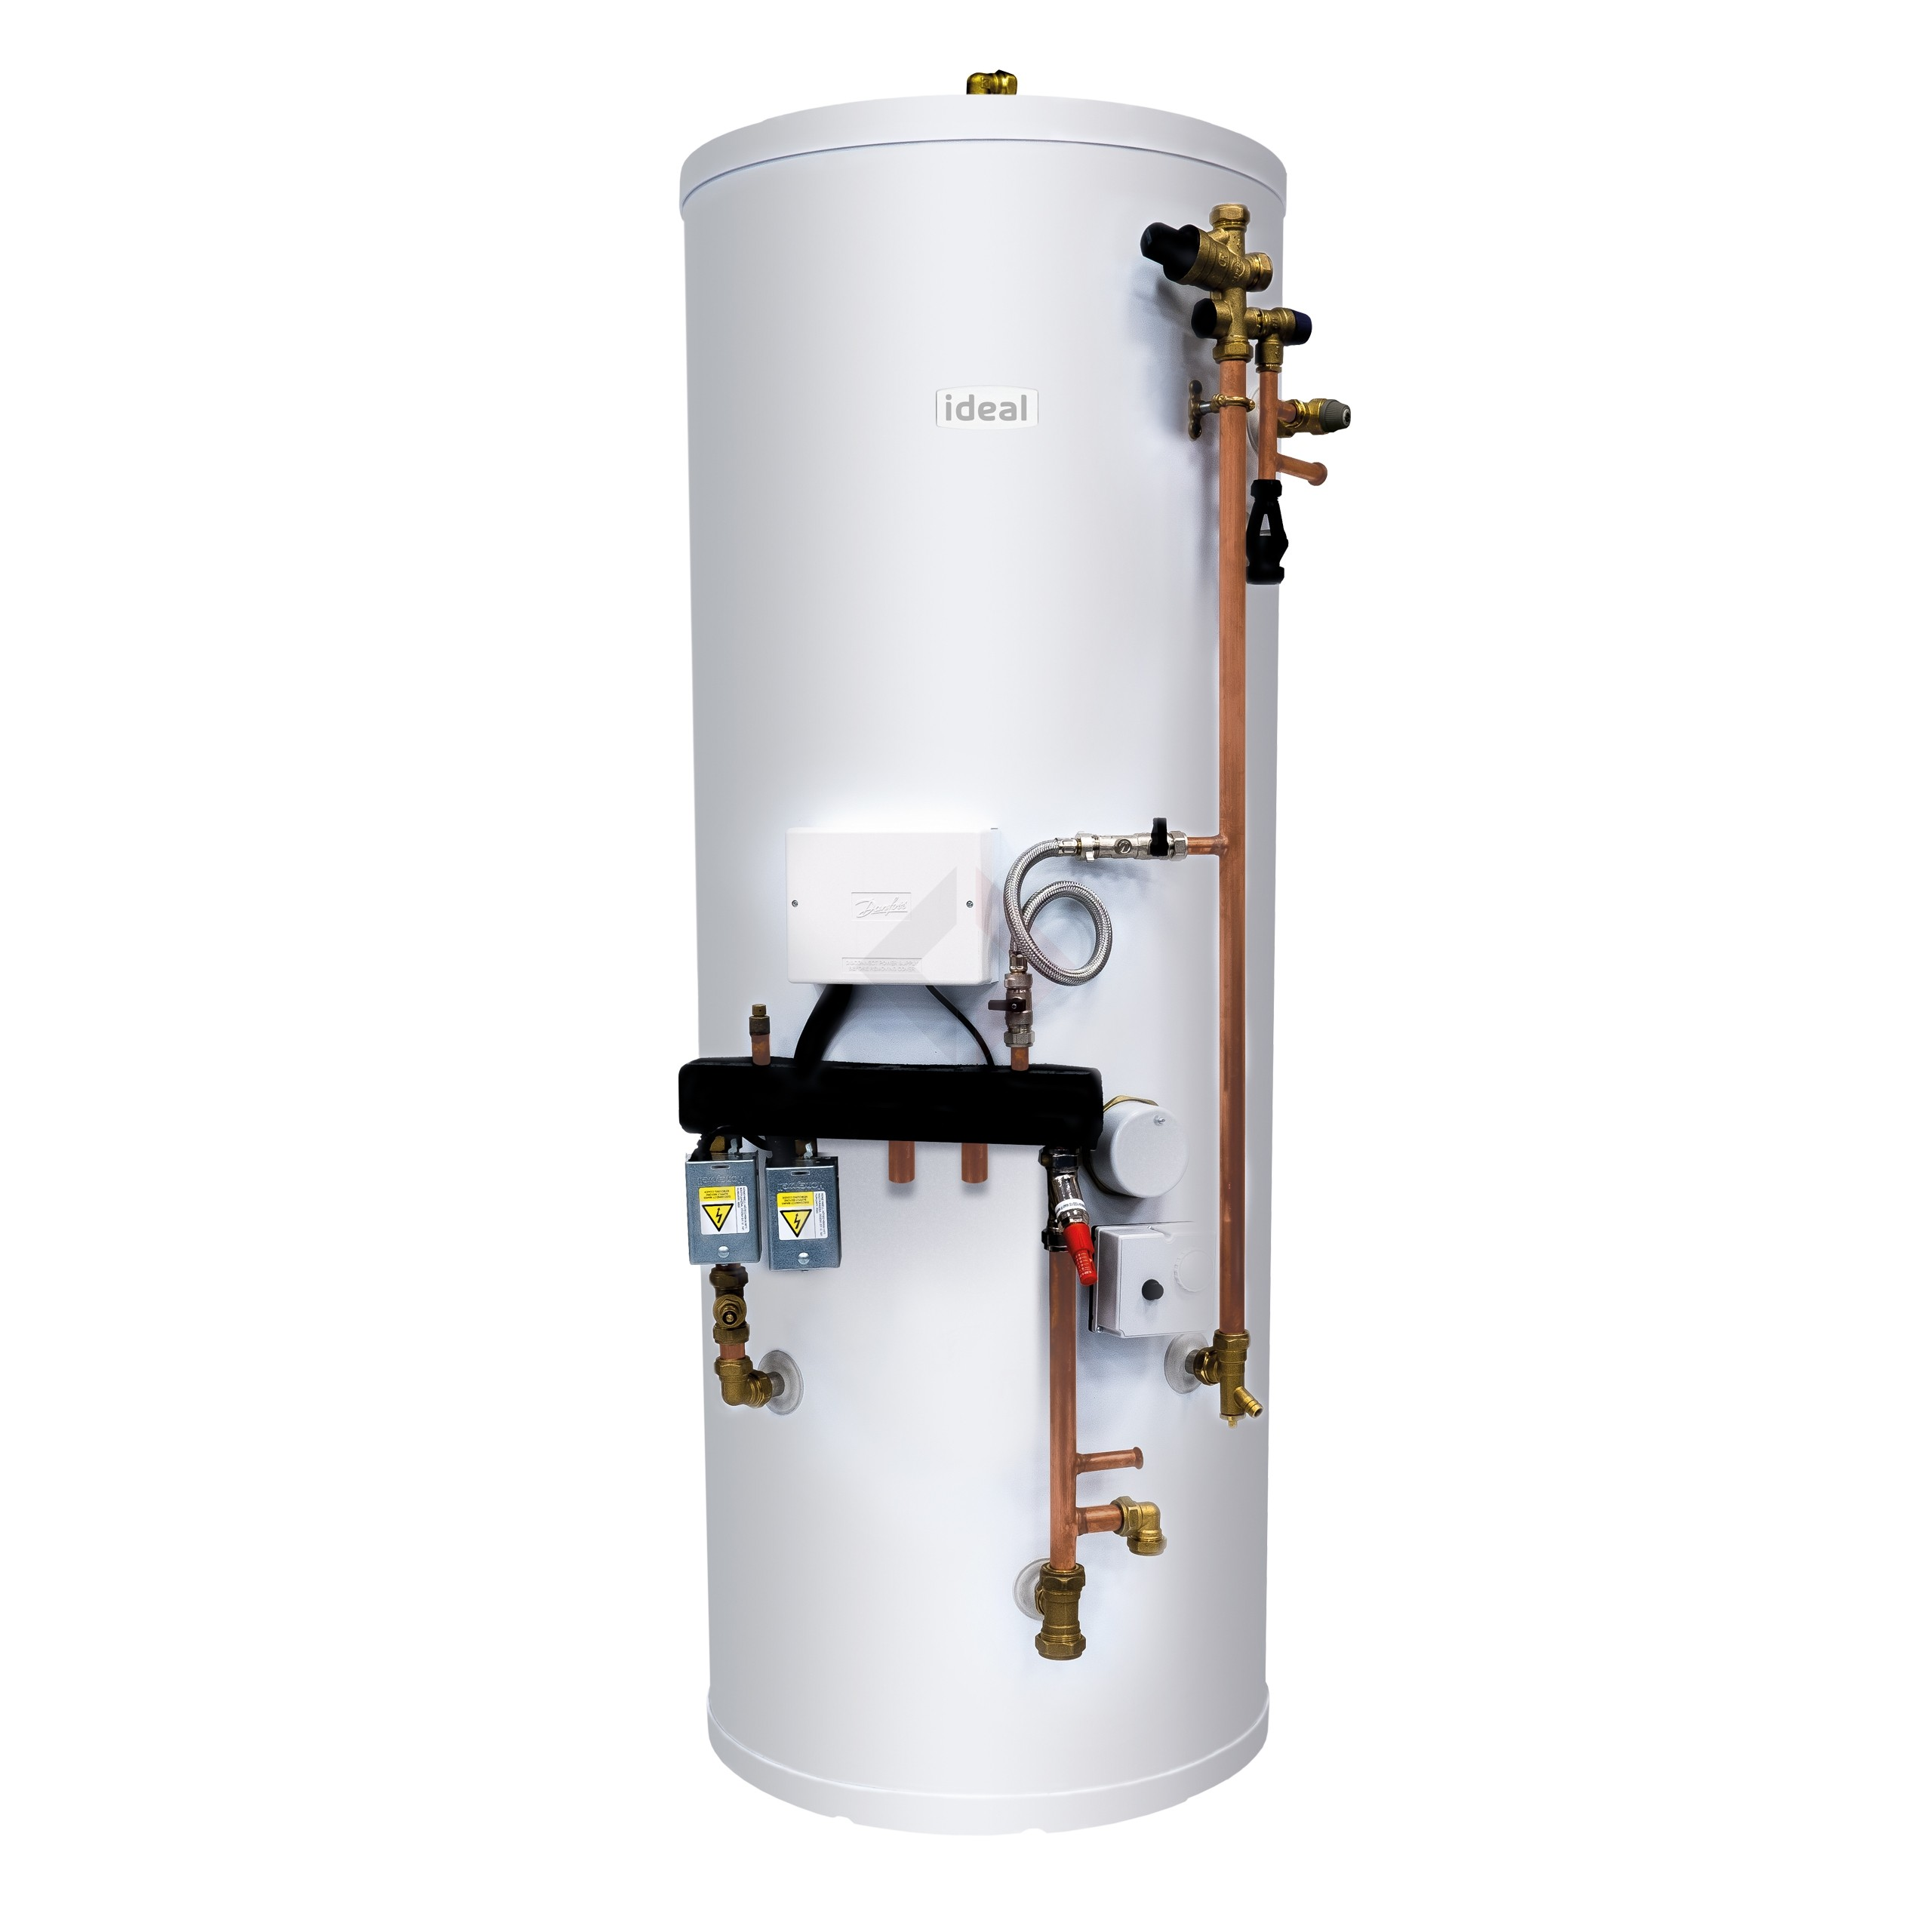 Ideal 180L System Ready Unvented Cylinder, Easy Pack